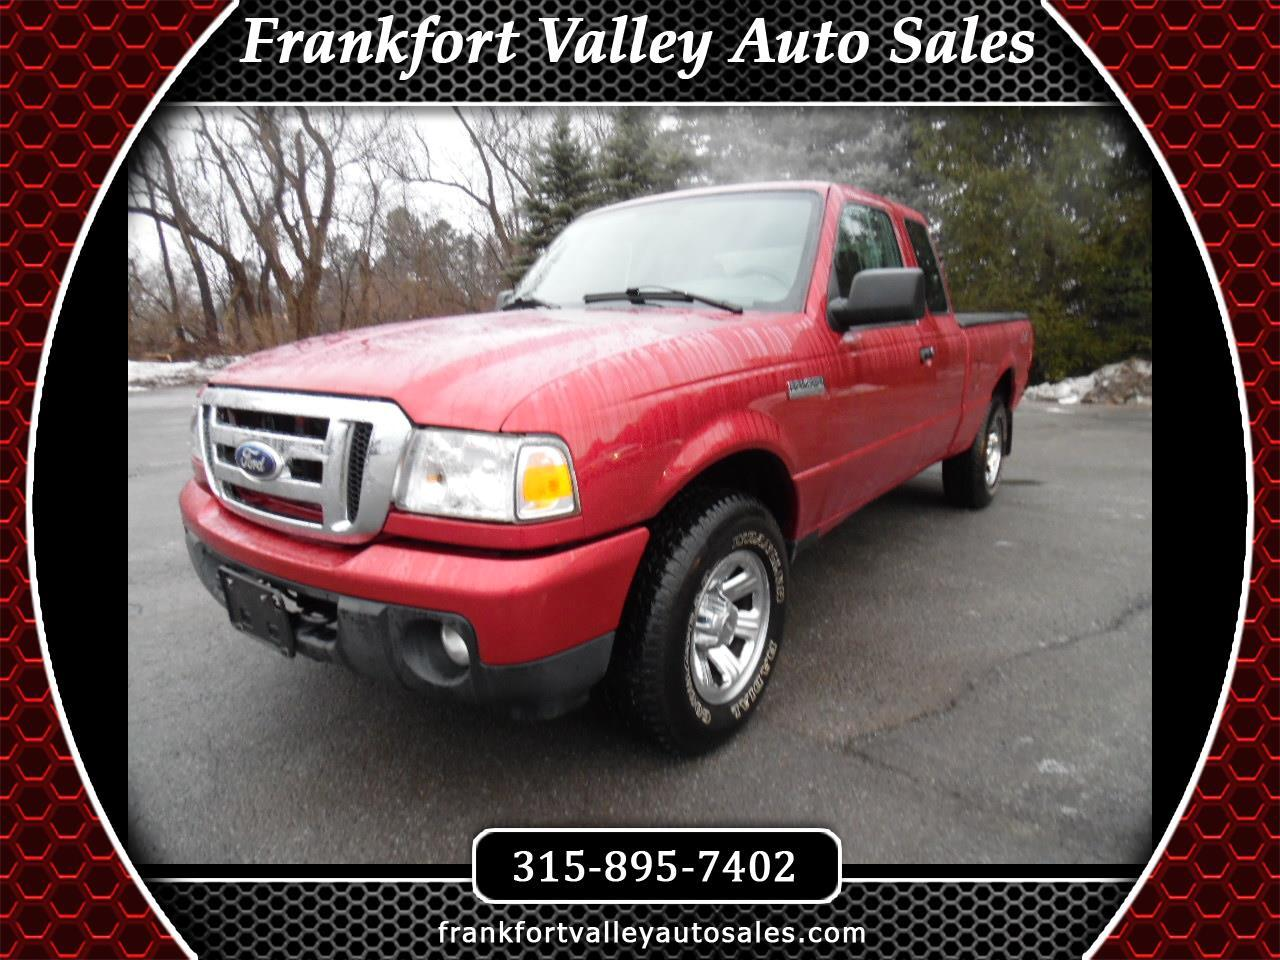 2009 Ford Ranger 4WD 2dr SuperCab 126